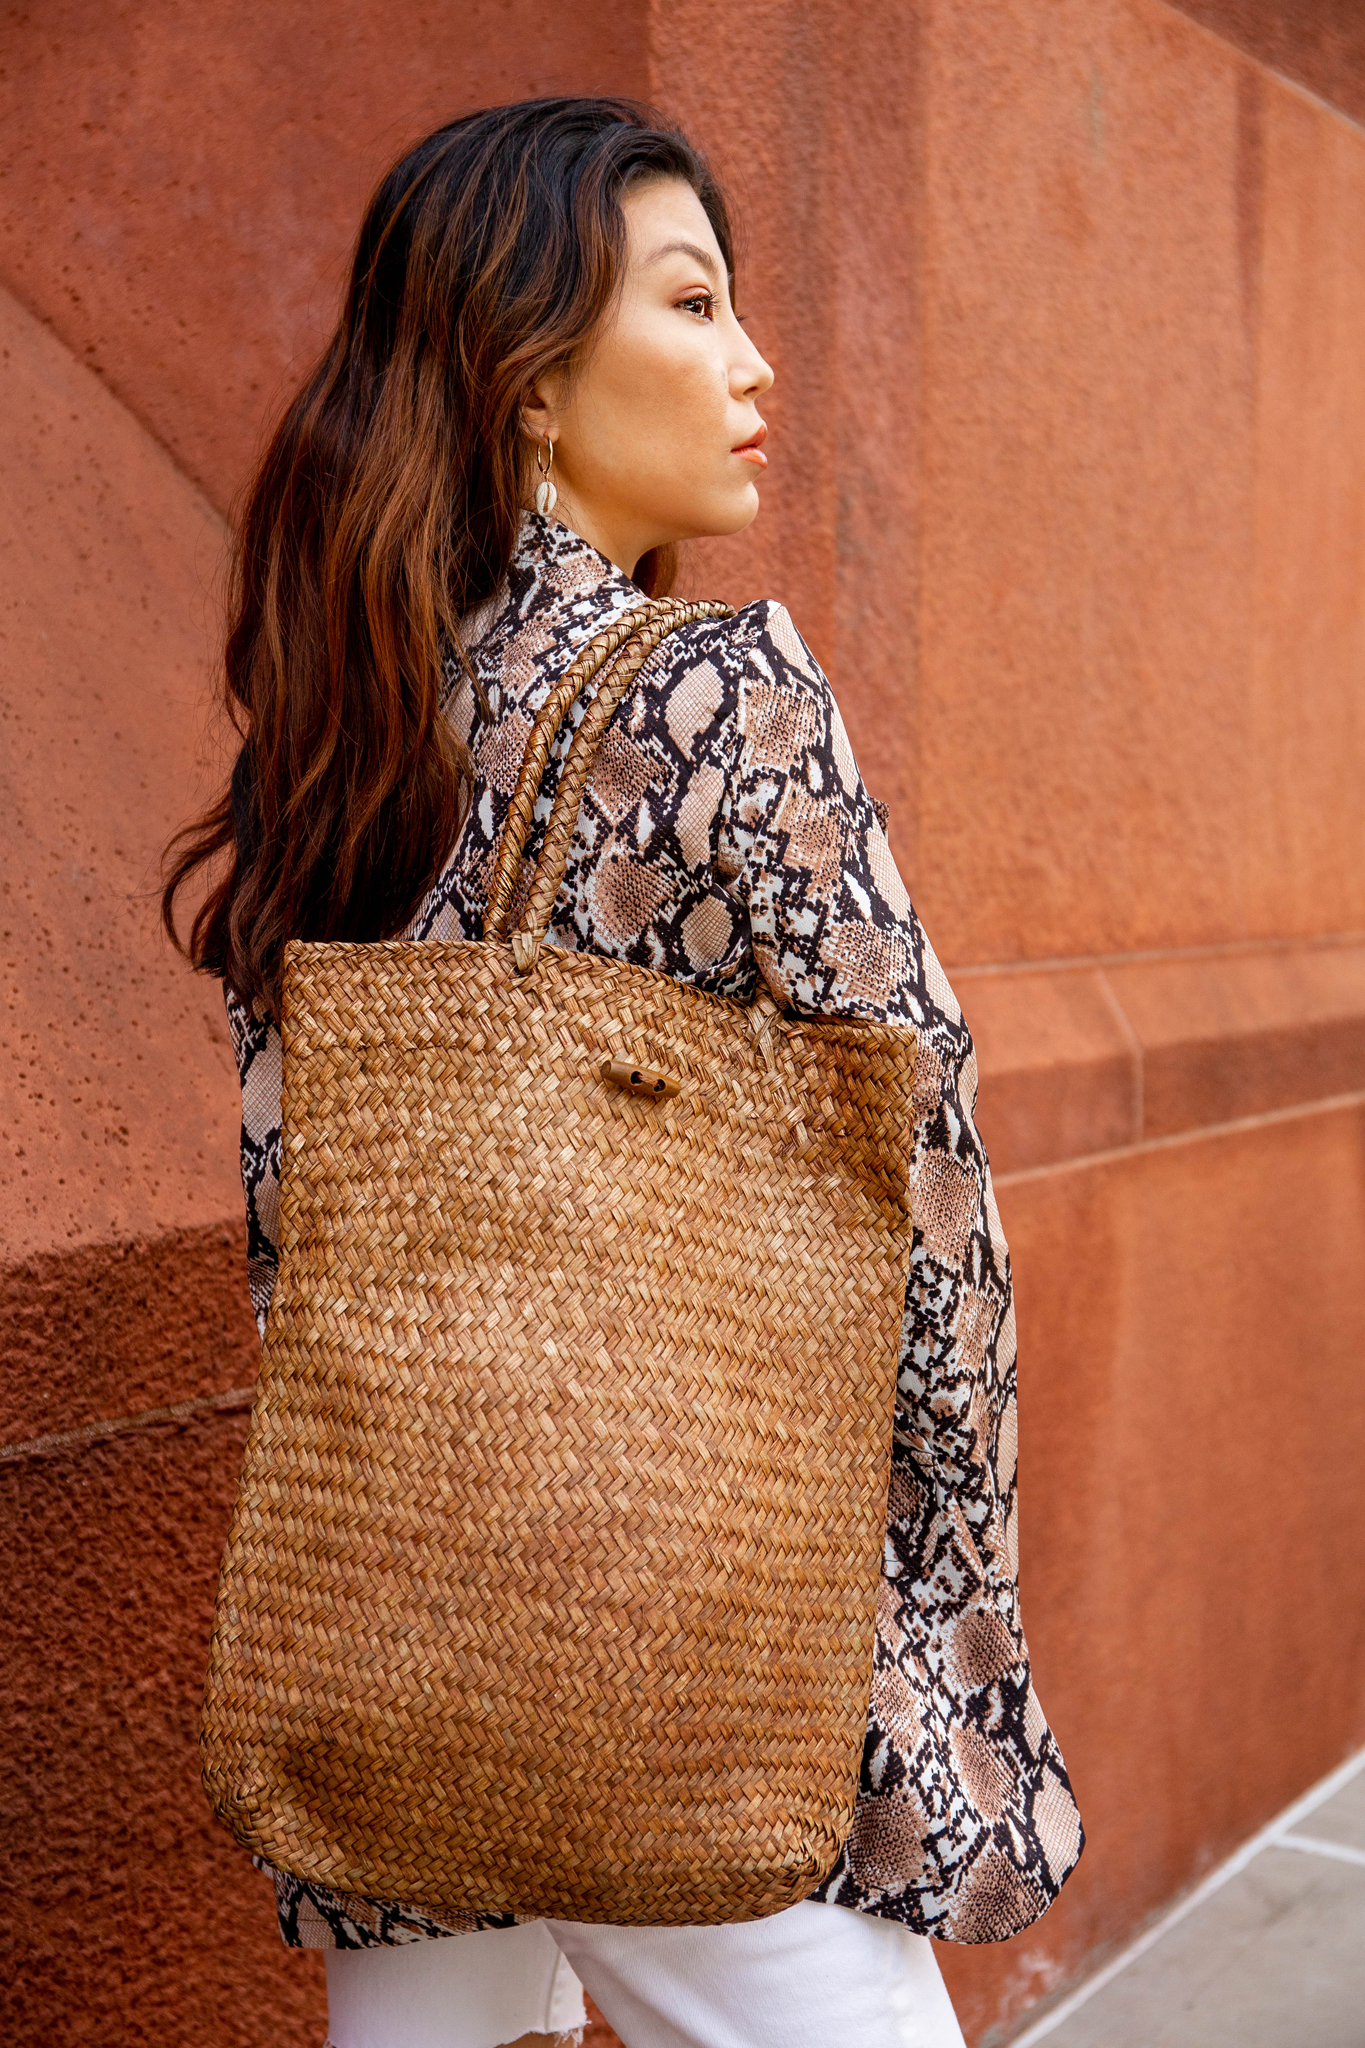 Long straw bag